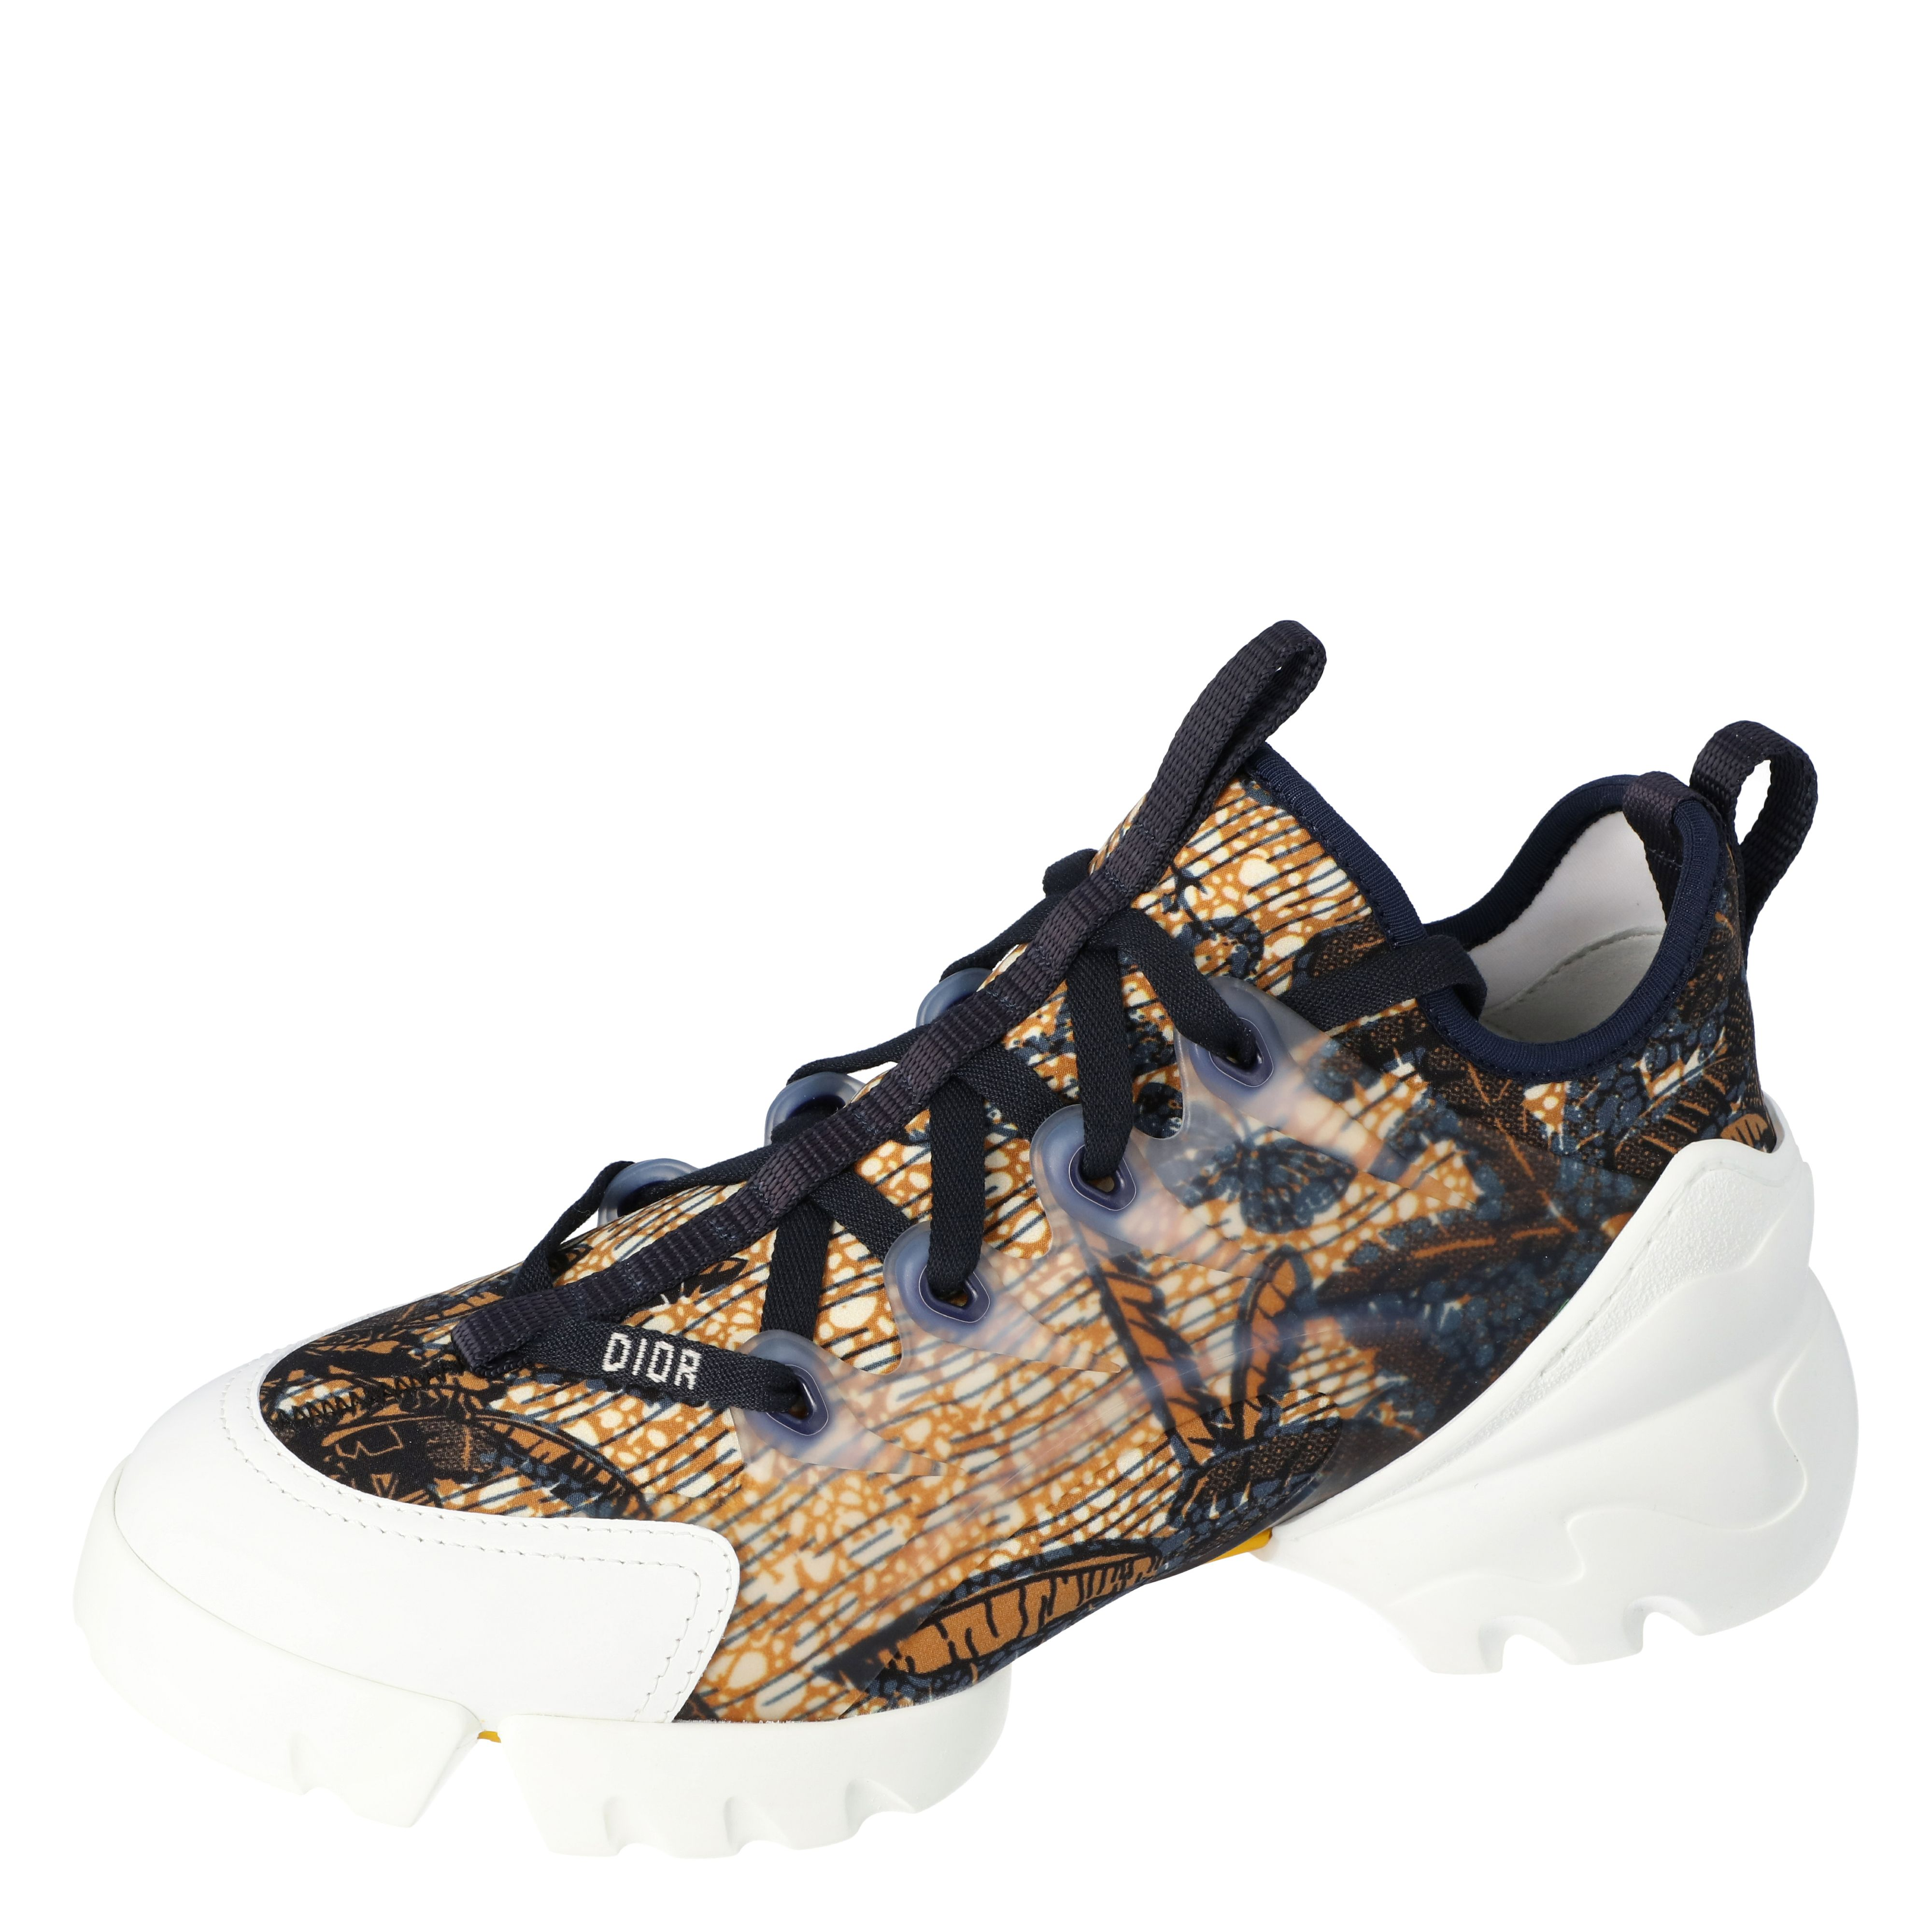 Dior Multicolor Tropicalia Print Technical Fabric D-Connect Platform Sneakers Size 38.5